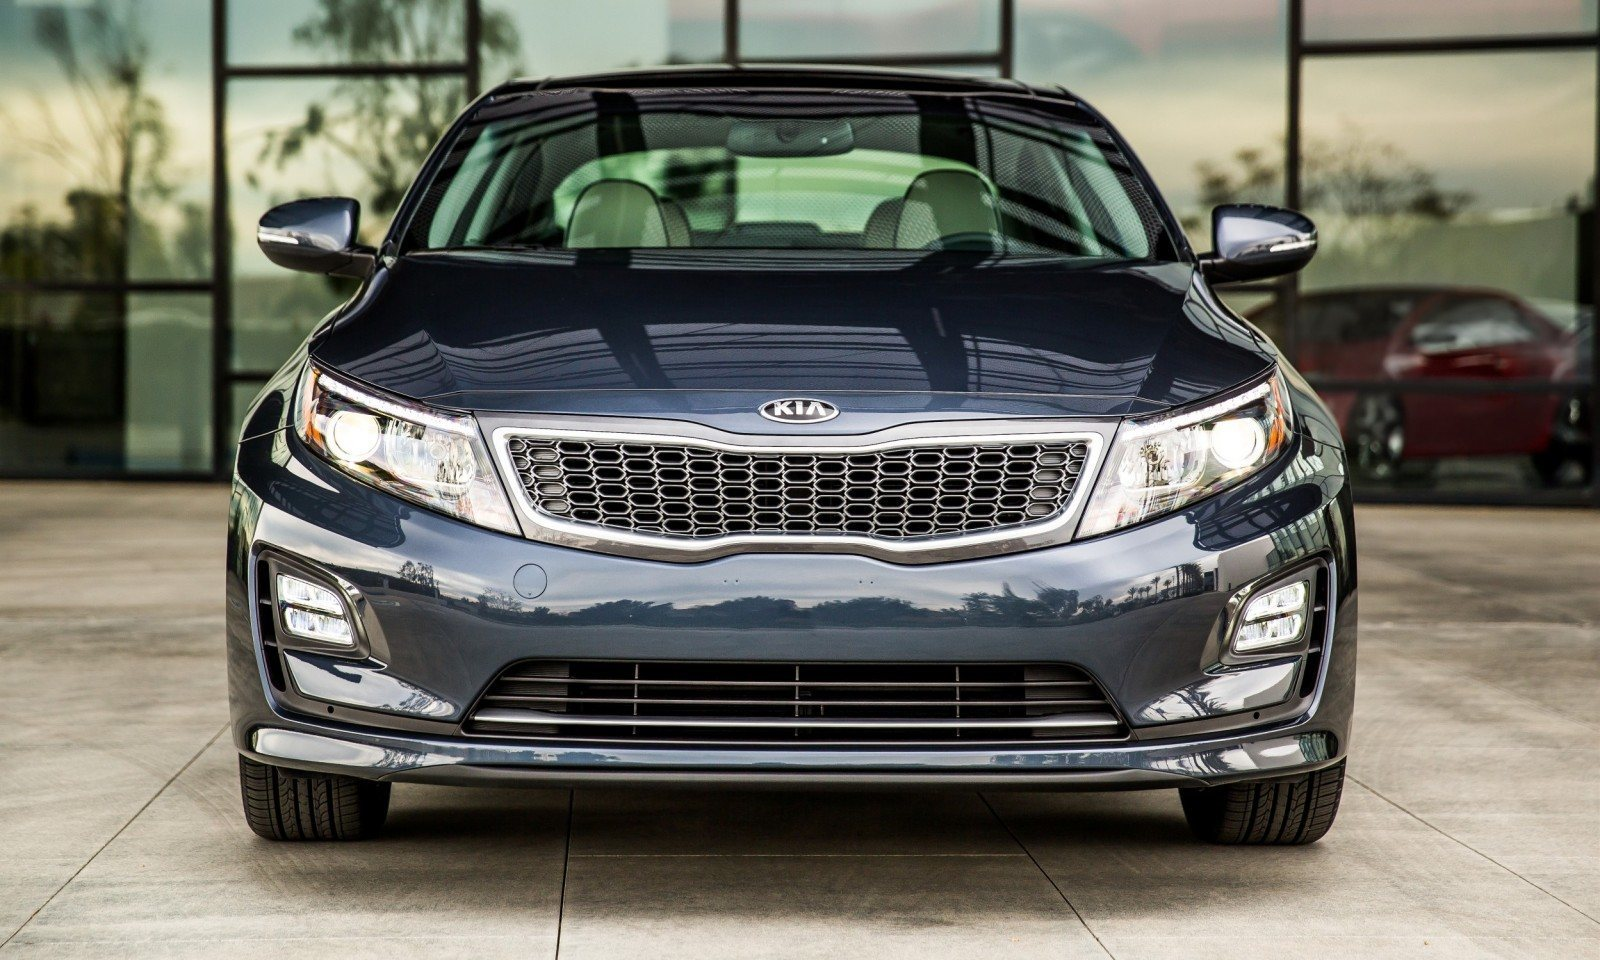 2014 Kia Optima Hybrid Updated With New Grille and LEDs Front and Rear - Specs, Features and Pricing 7